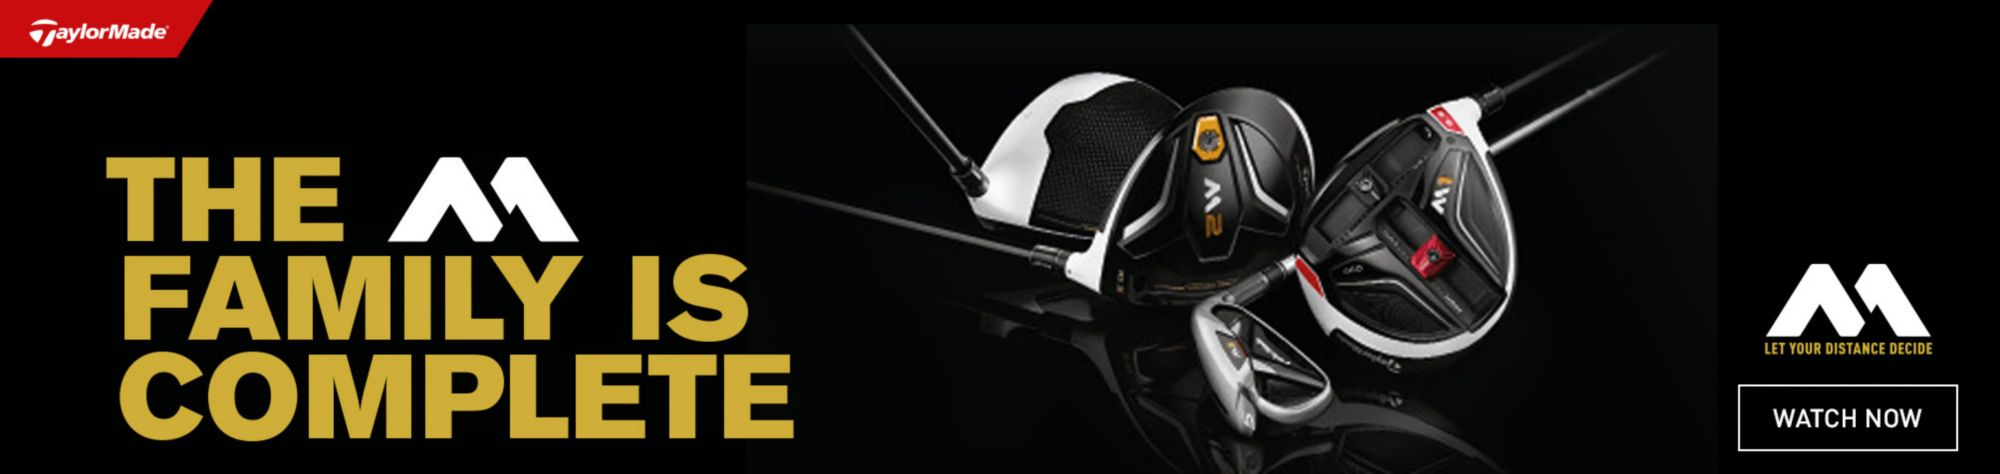 Shop TaylorMade